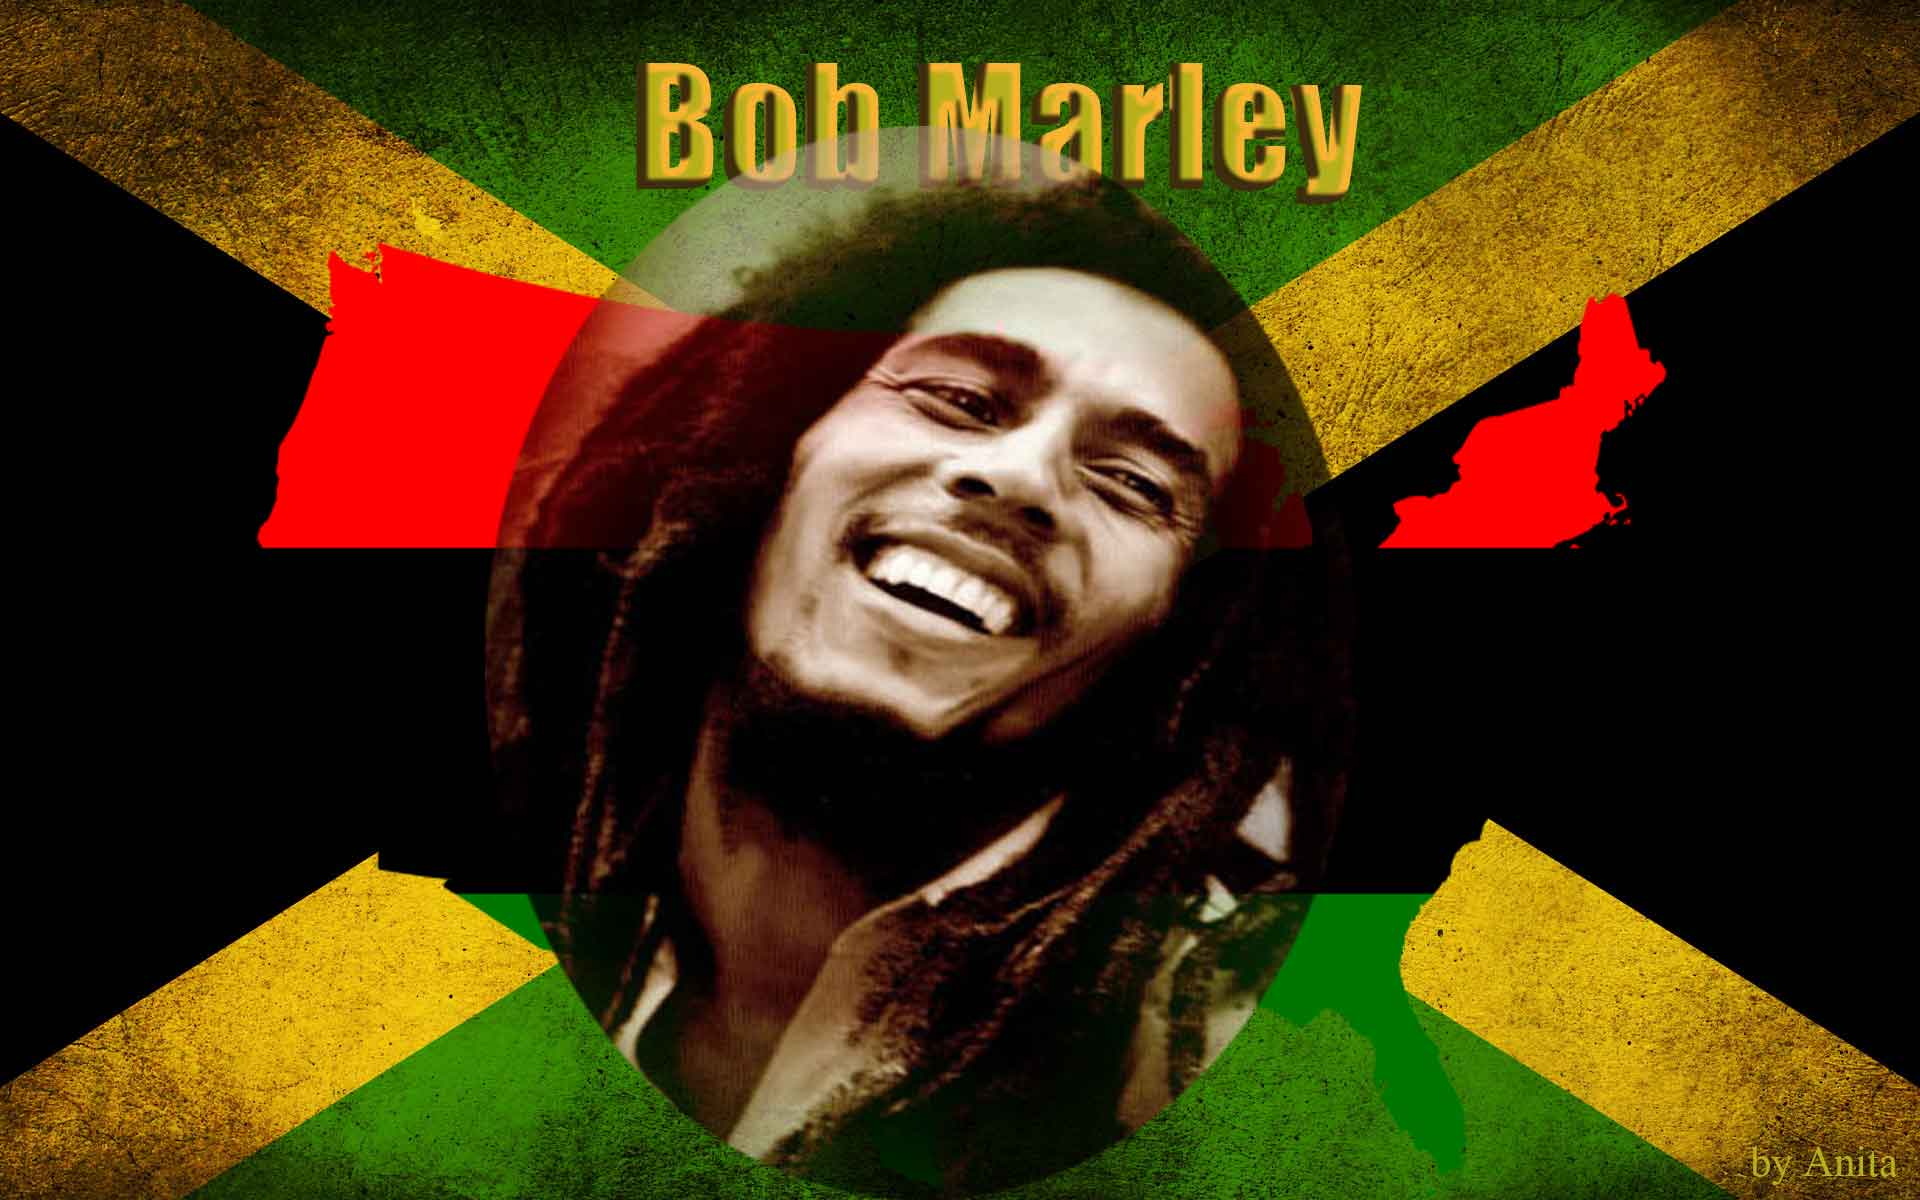 Libro De Bob Marley Batalla Legal Por No Woman No Cry Y Otras 12 Canciones